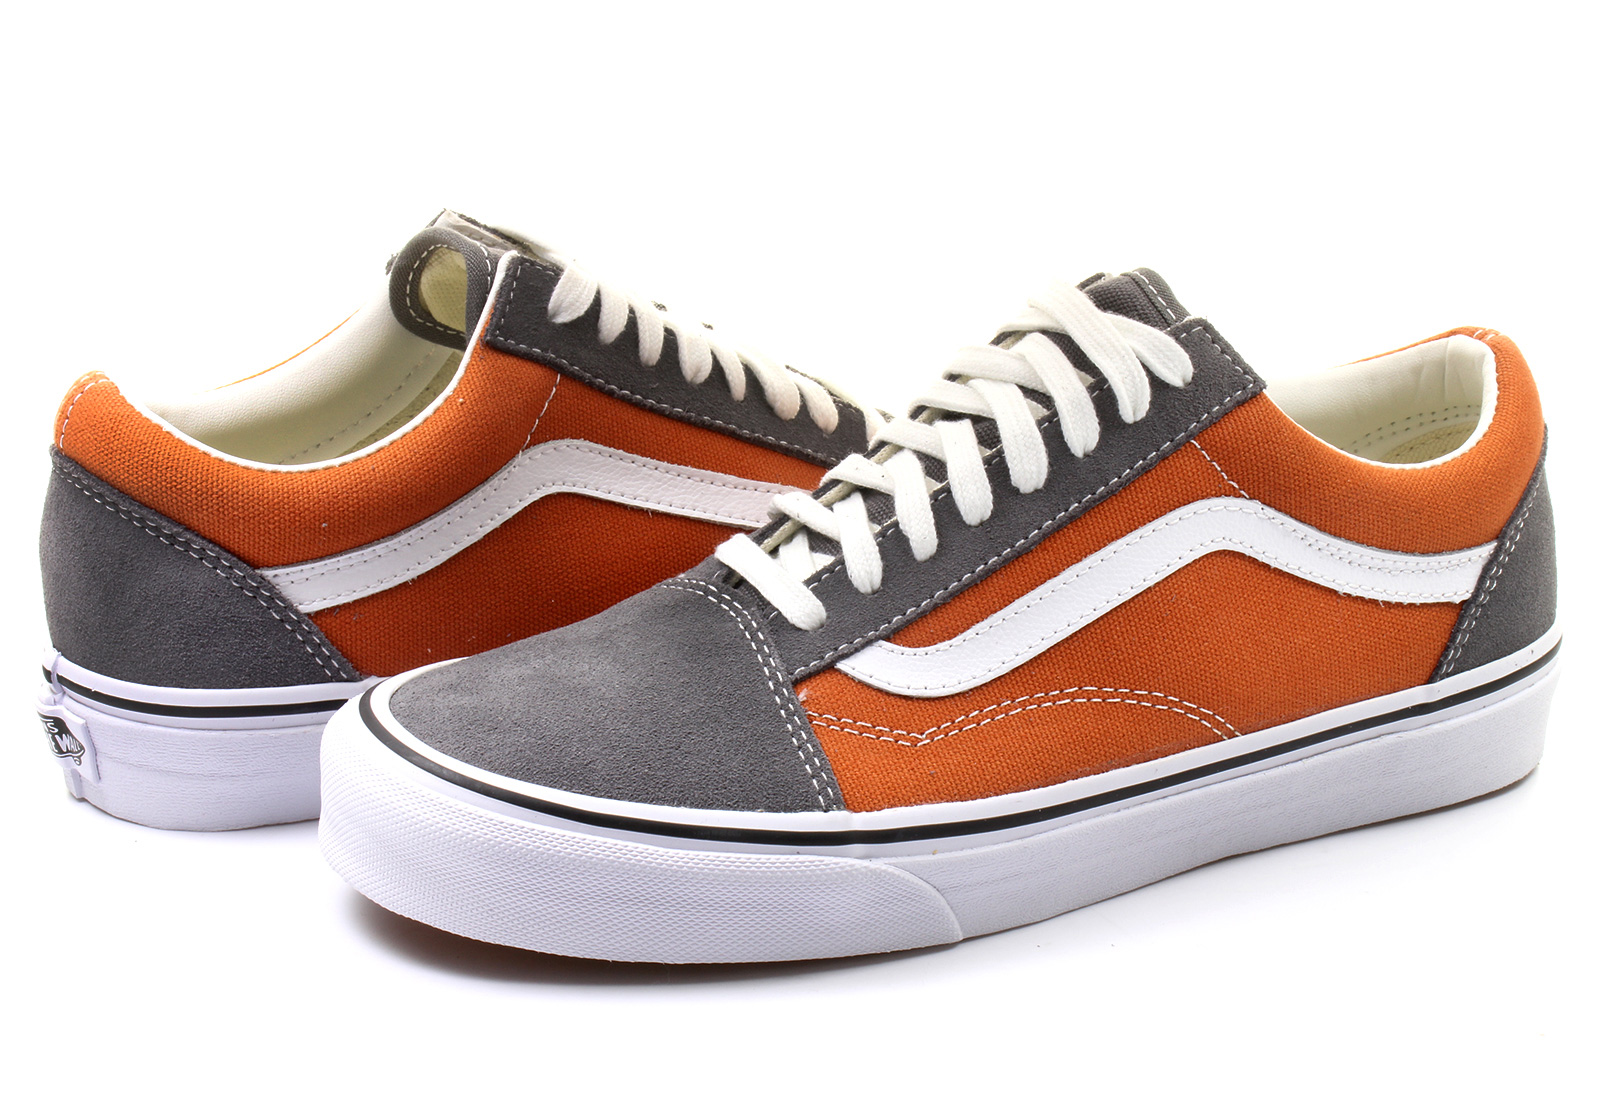 Vans Shoes - Old Skool - VVOKAY9 - Online shop for sneakers 242398bf21